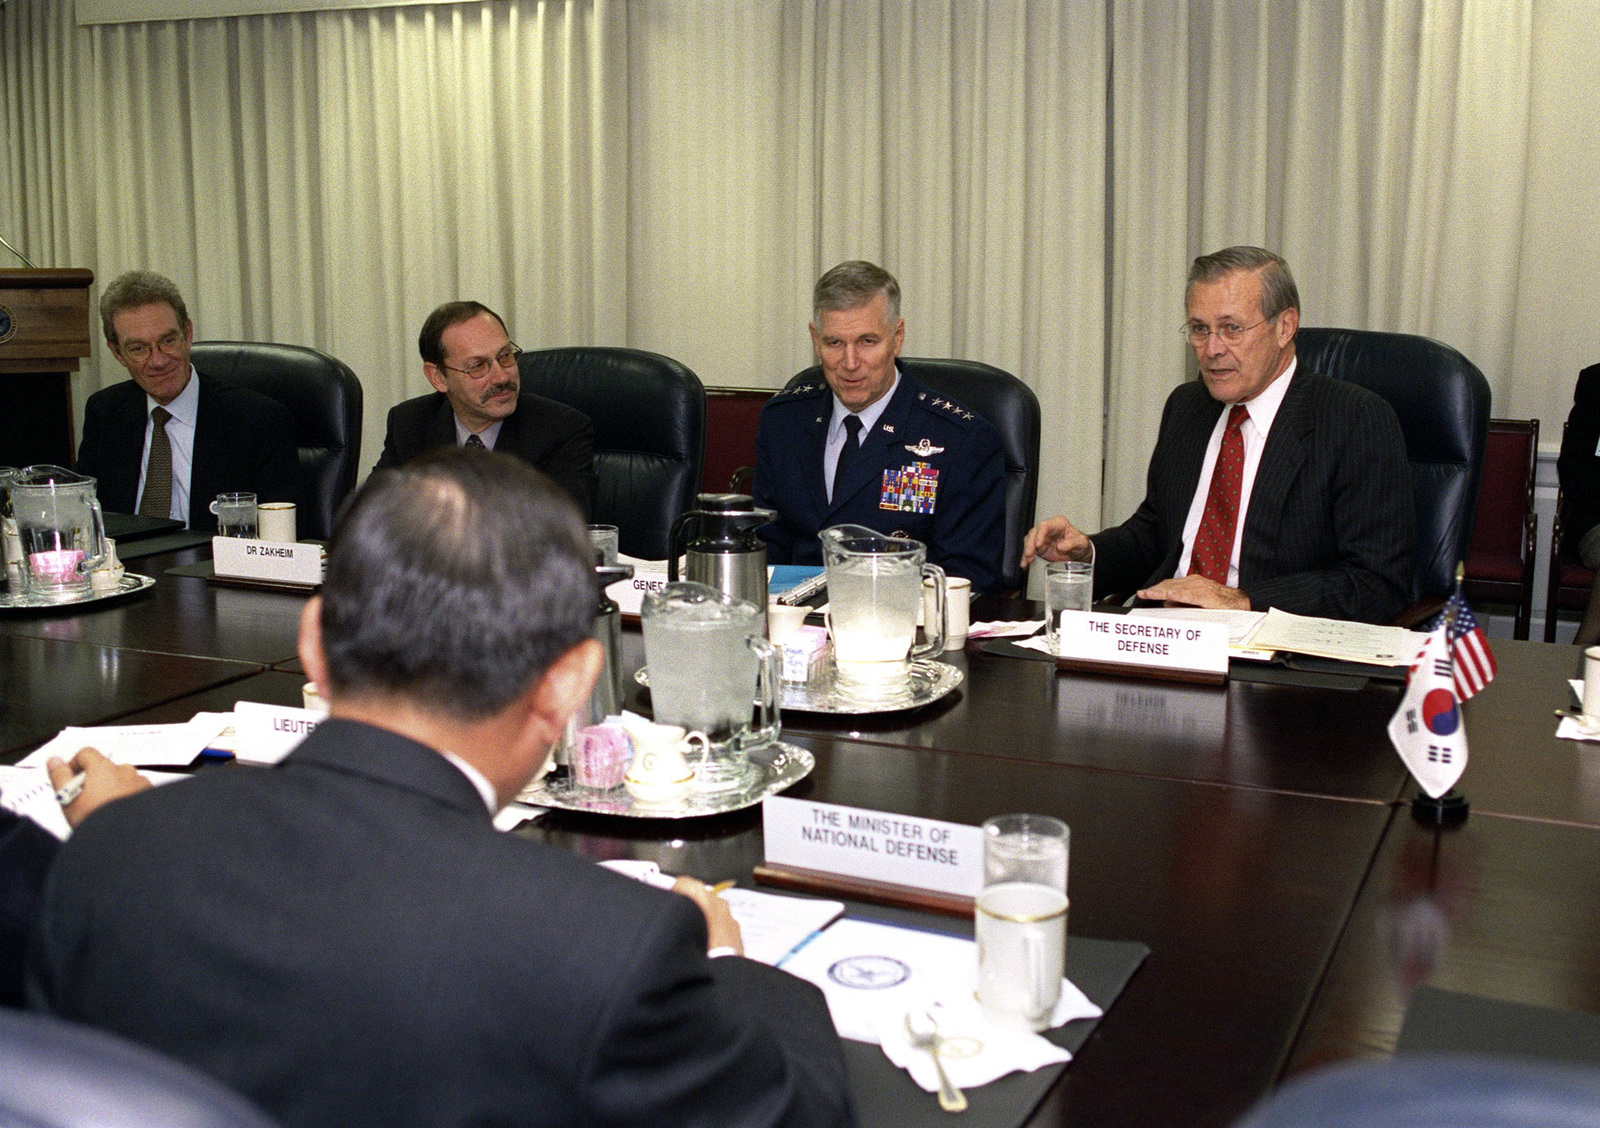 secretary defense national security essay competition Afghan national defense and security forces iran: authorizes the secretary of defense, with the concurrence of the secretary of state, to develop a strategy with foreign partner countries to counter the destabilizing activities of iran.